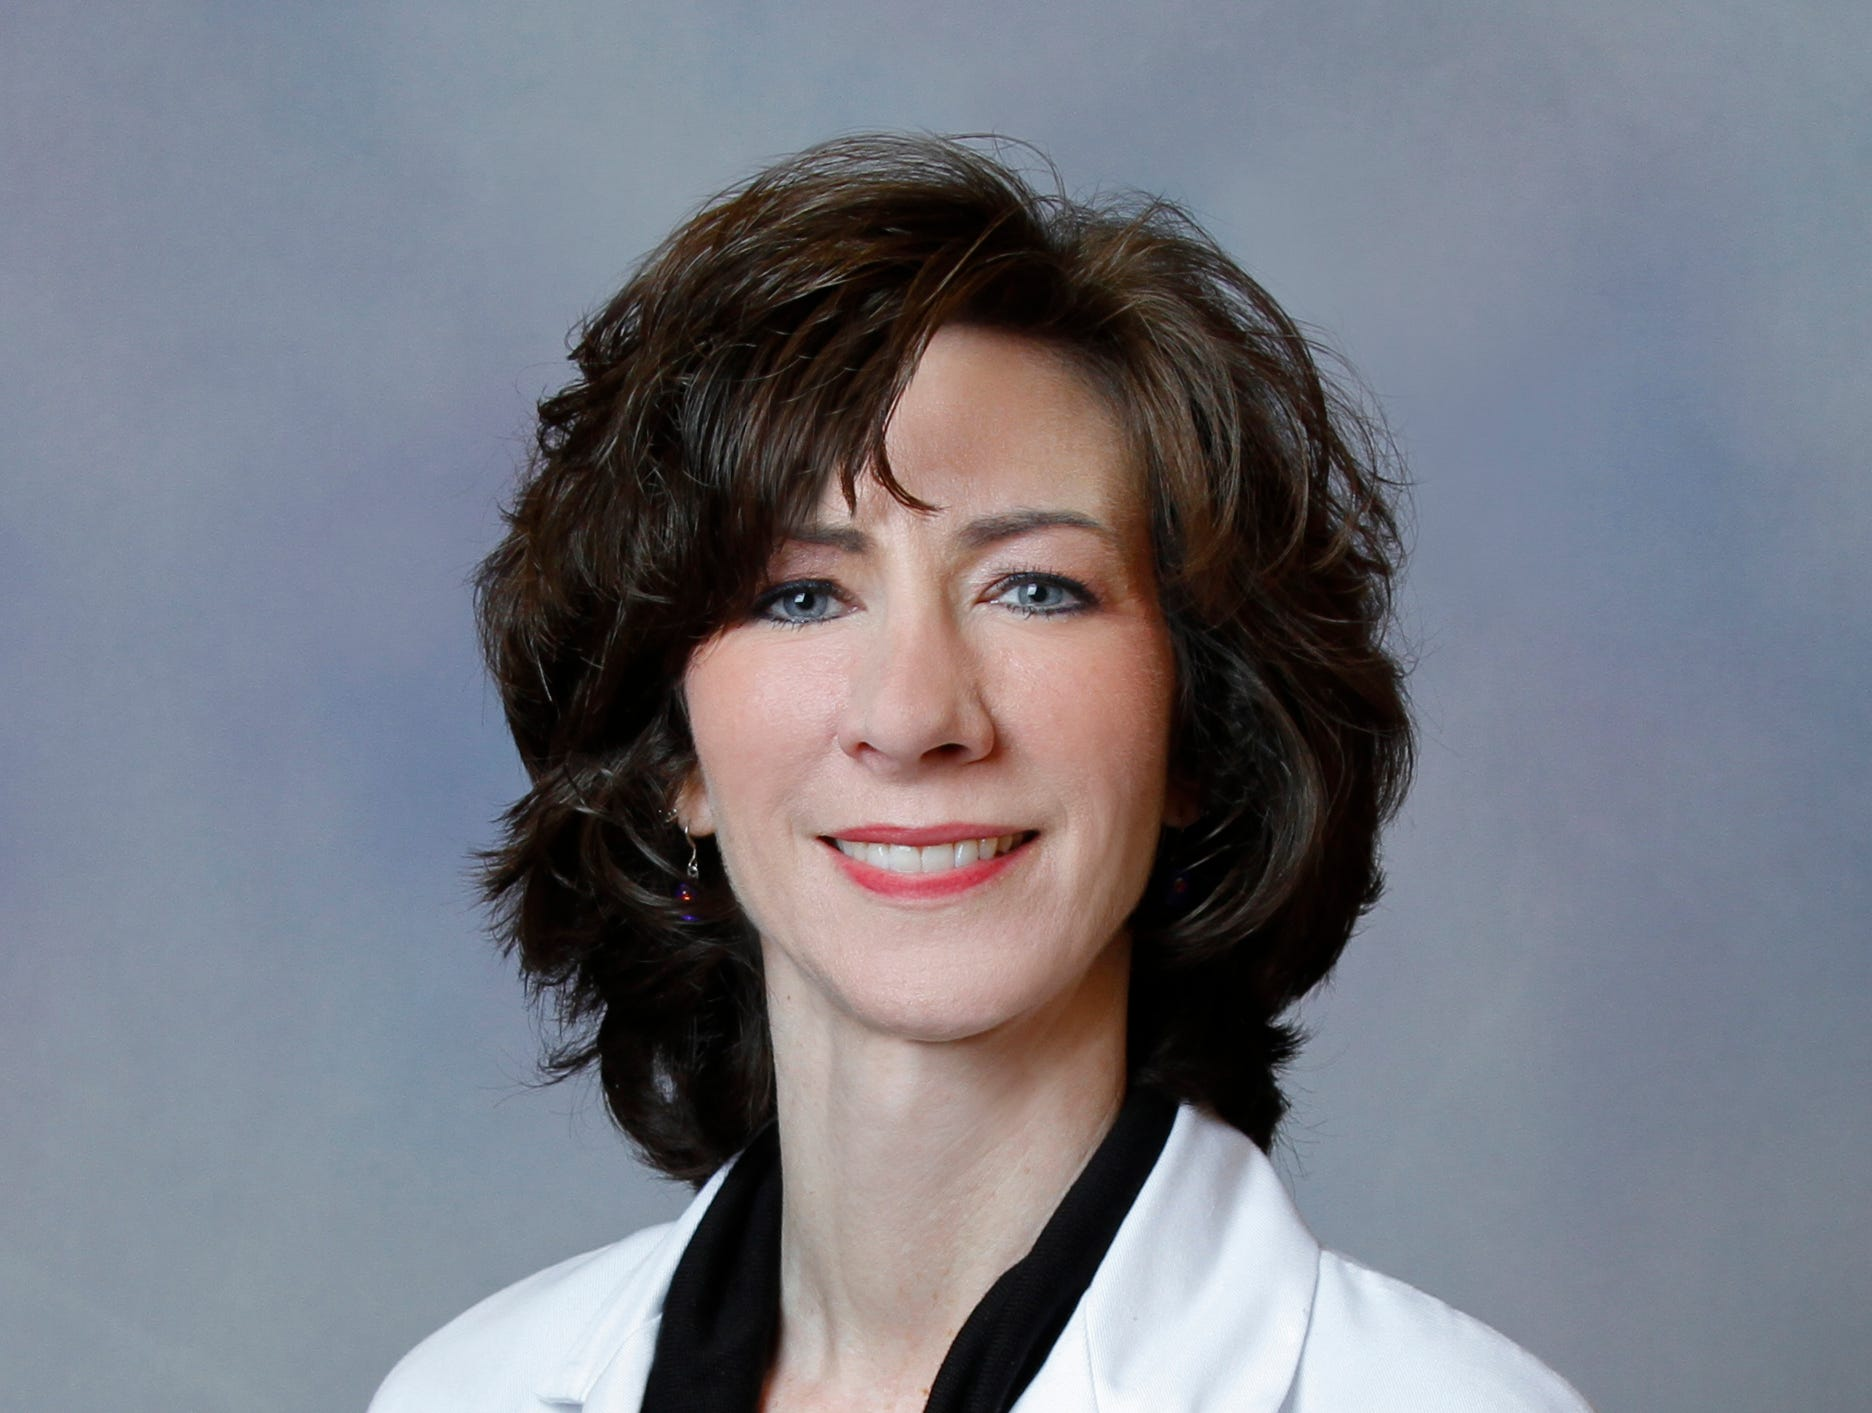 Leaders at The University of Tennessee Medical Center named Dr. Amy Barger Stevens as vice president of the UT Primary Care Collaborative. Stevens, who joined the medical center as a primary care physician in 2001 and who has held numerous positions of leadership throughout the years, assumes the newly created role effective immediately. Stevens' immediate responsibility is to shape and define the structure of the recently formed collaborative. In addition to the new role, Stevens will continue to see patients as a practicing physician. She also will retain her current roles as chair of the board of directors for University Health Network, professor and residency program director with the Department of Family Medicine at the University of Tennessee Graduate School of Medicine, and academic council and faculty member for the National Institute of Program Director Development. During her time at the medical center, Stevens served as Chief of Staff and graduated from the medical center's Physician Leadership Academy.